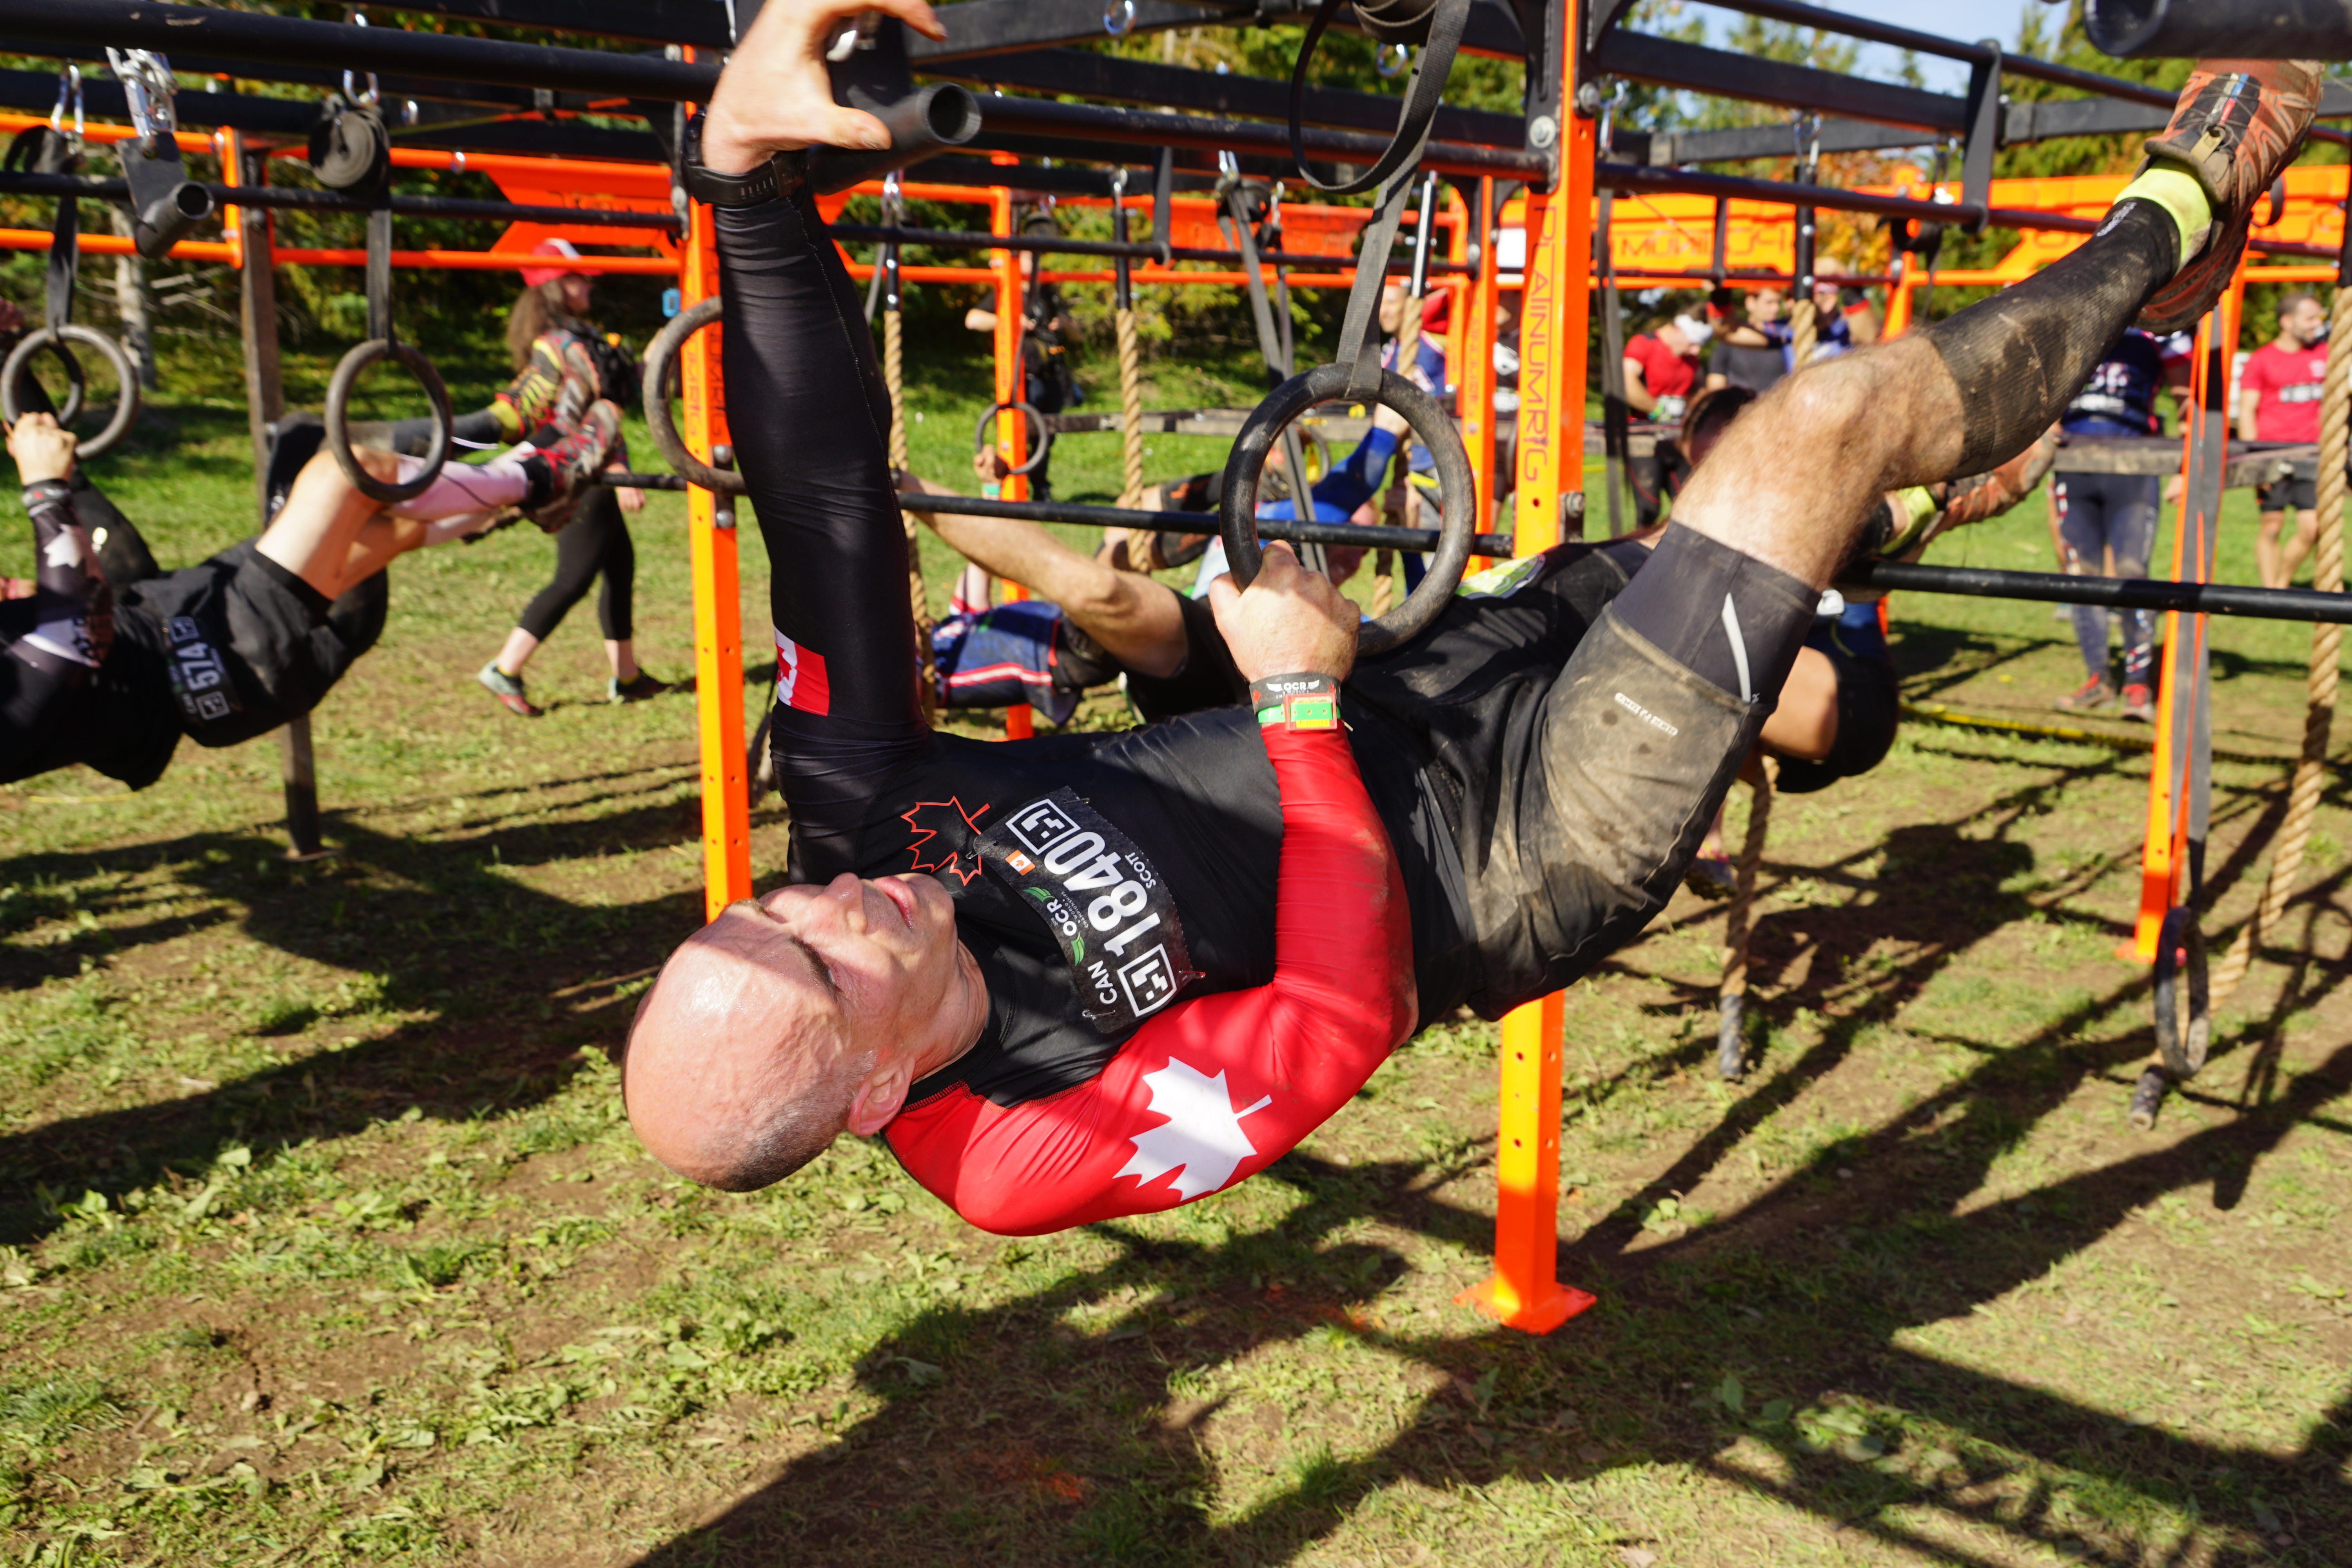 OCR World Championships Statistics